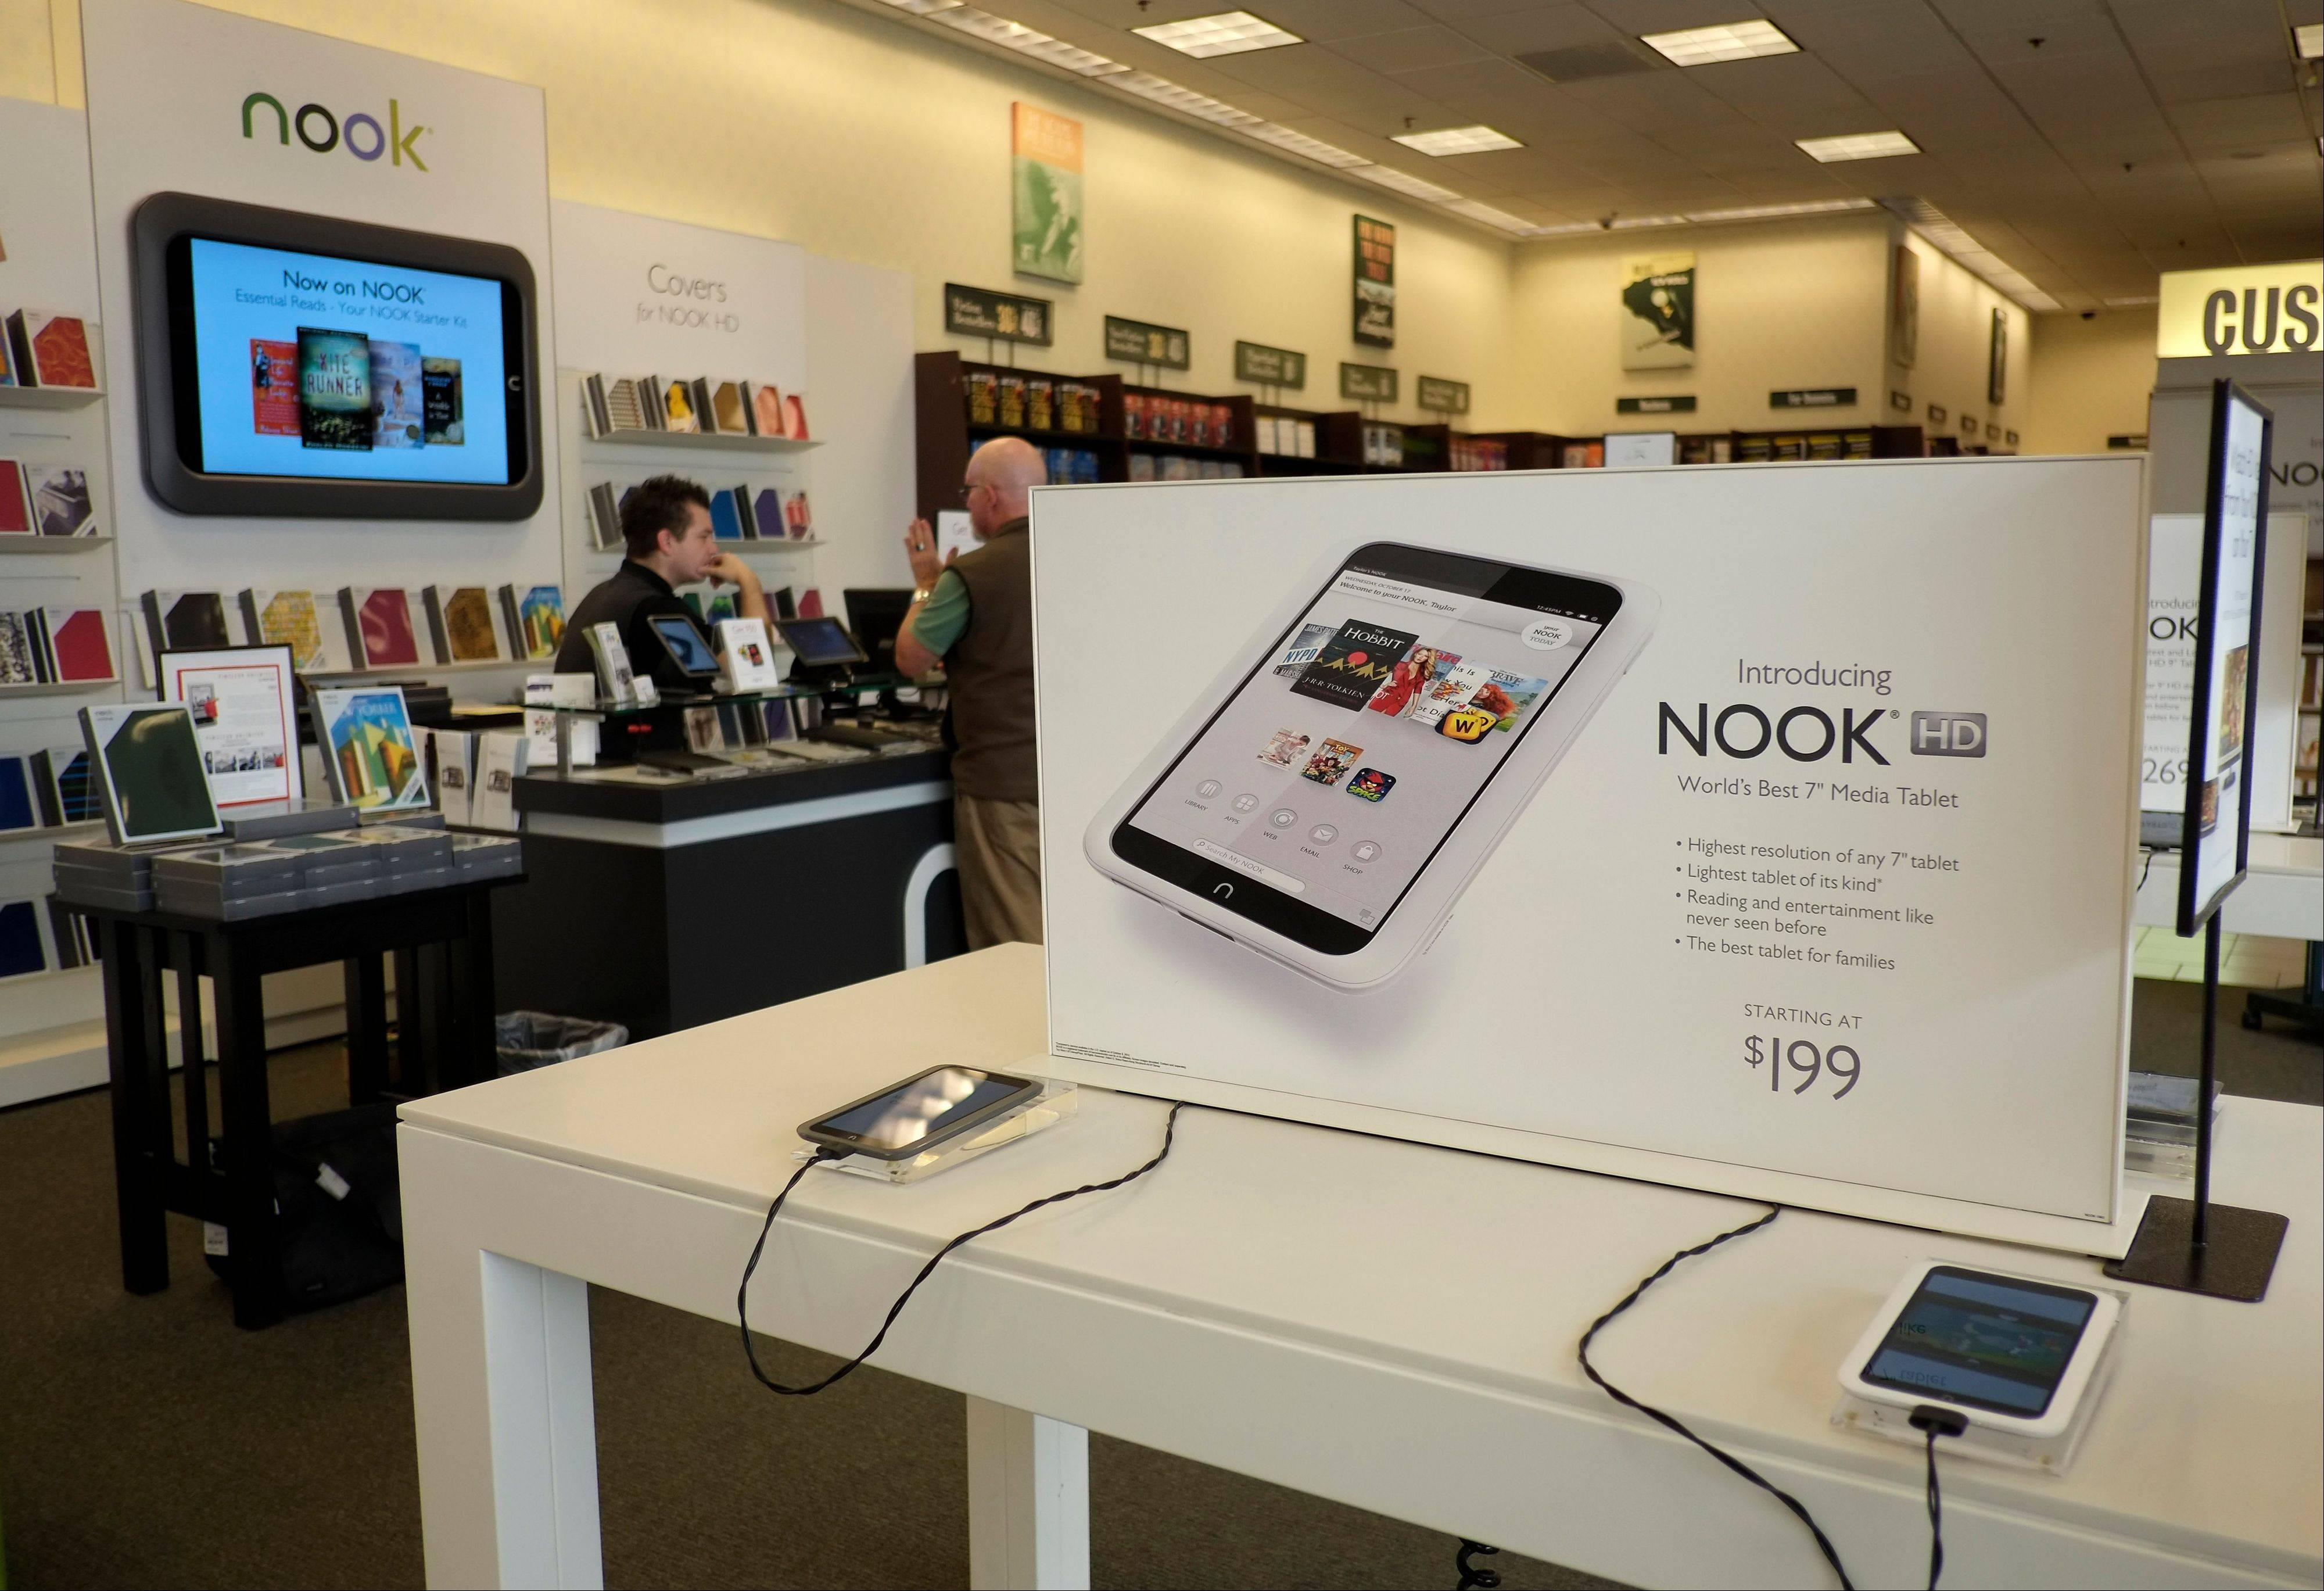 Barnes & Noble is teaming up with Google to vastly increase the number of apps available on its Nook HD tablets. The bookstore chain says it will add Googleís Play app store to its Nook HD and HD+ products via a software update on Friday.